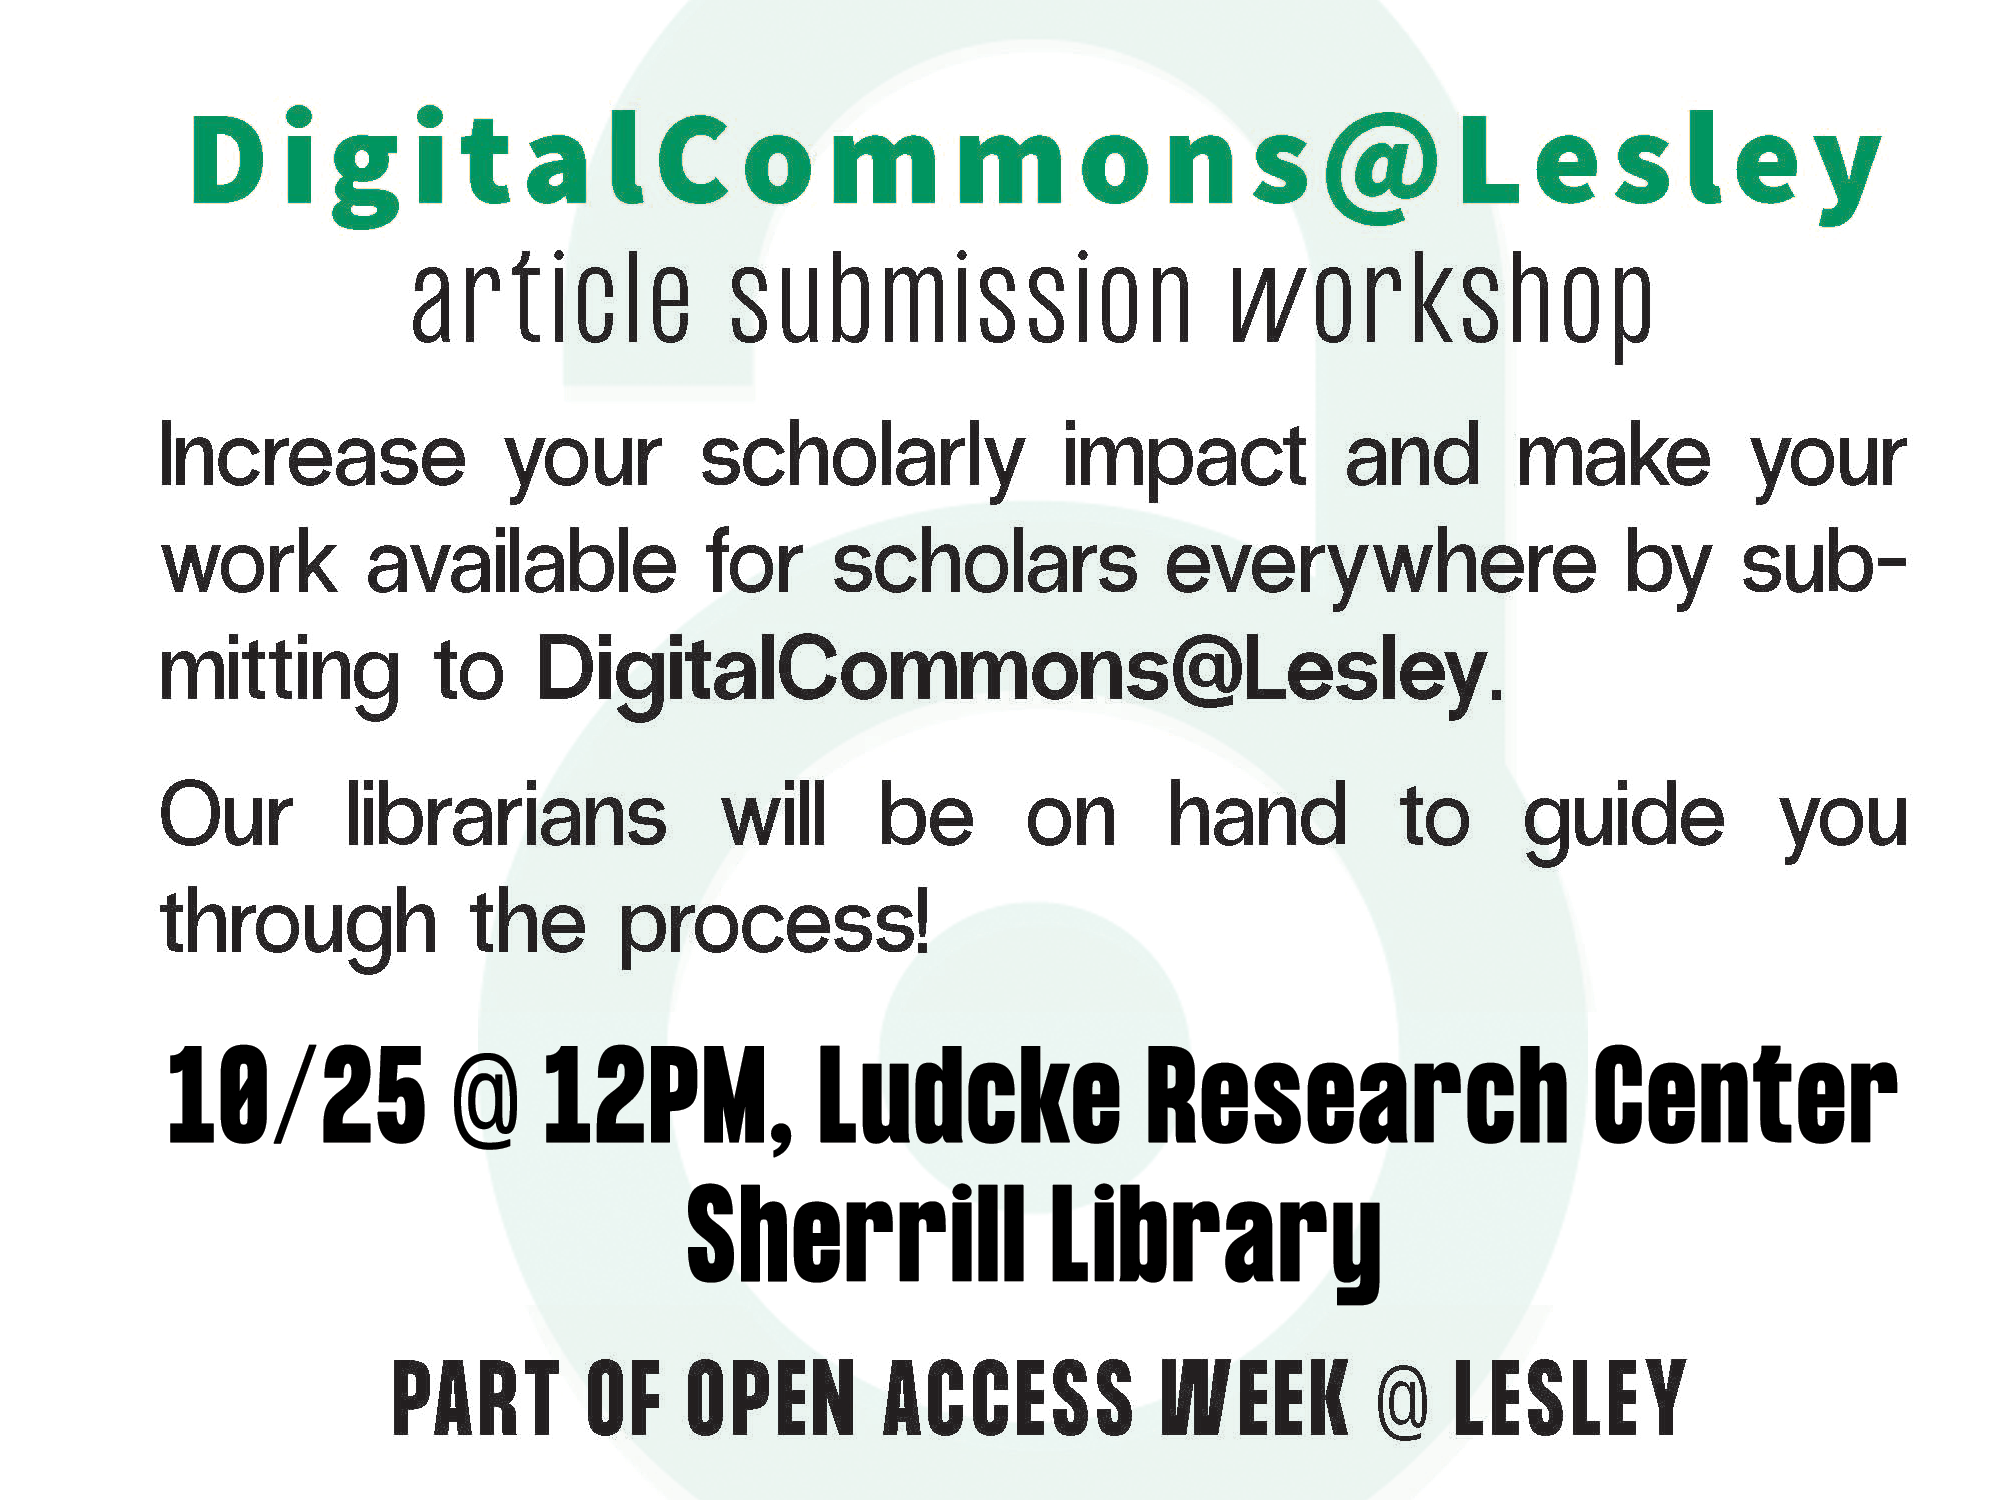 Event info for DigitalCommons@Lesley article submission workshop happening October 25 at noon that links to Lesley Website event